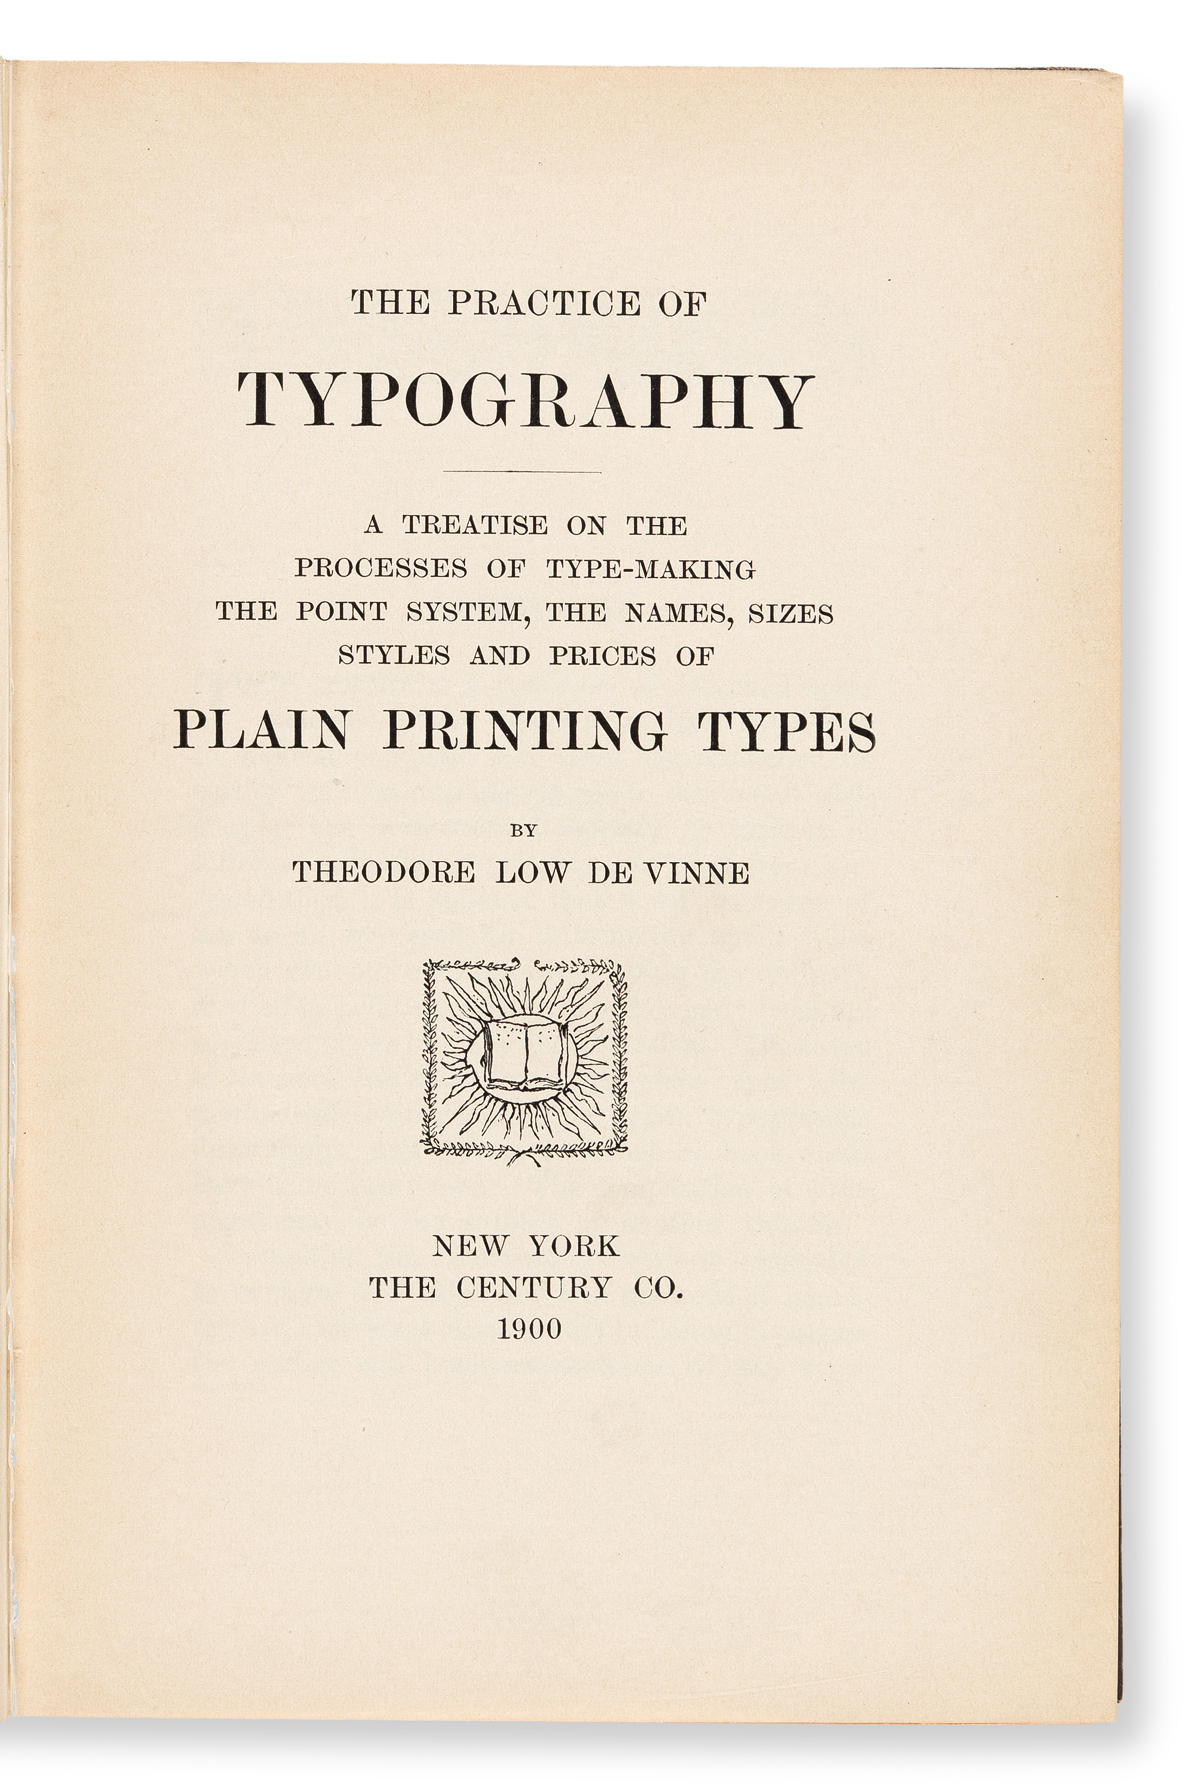 DE VINNE, THEODORE LOW, A.M. 1. A Treatise on… Plain Printing Types — 2. Treatise on Title-Pages — 3. Correct Composition (second editi